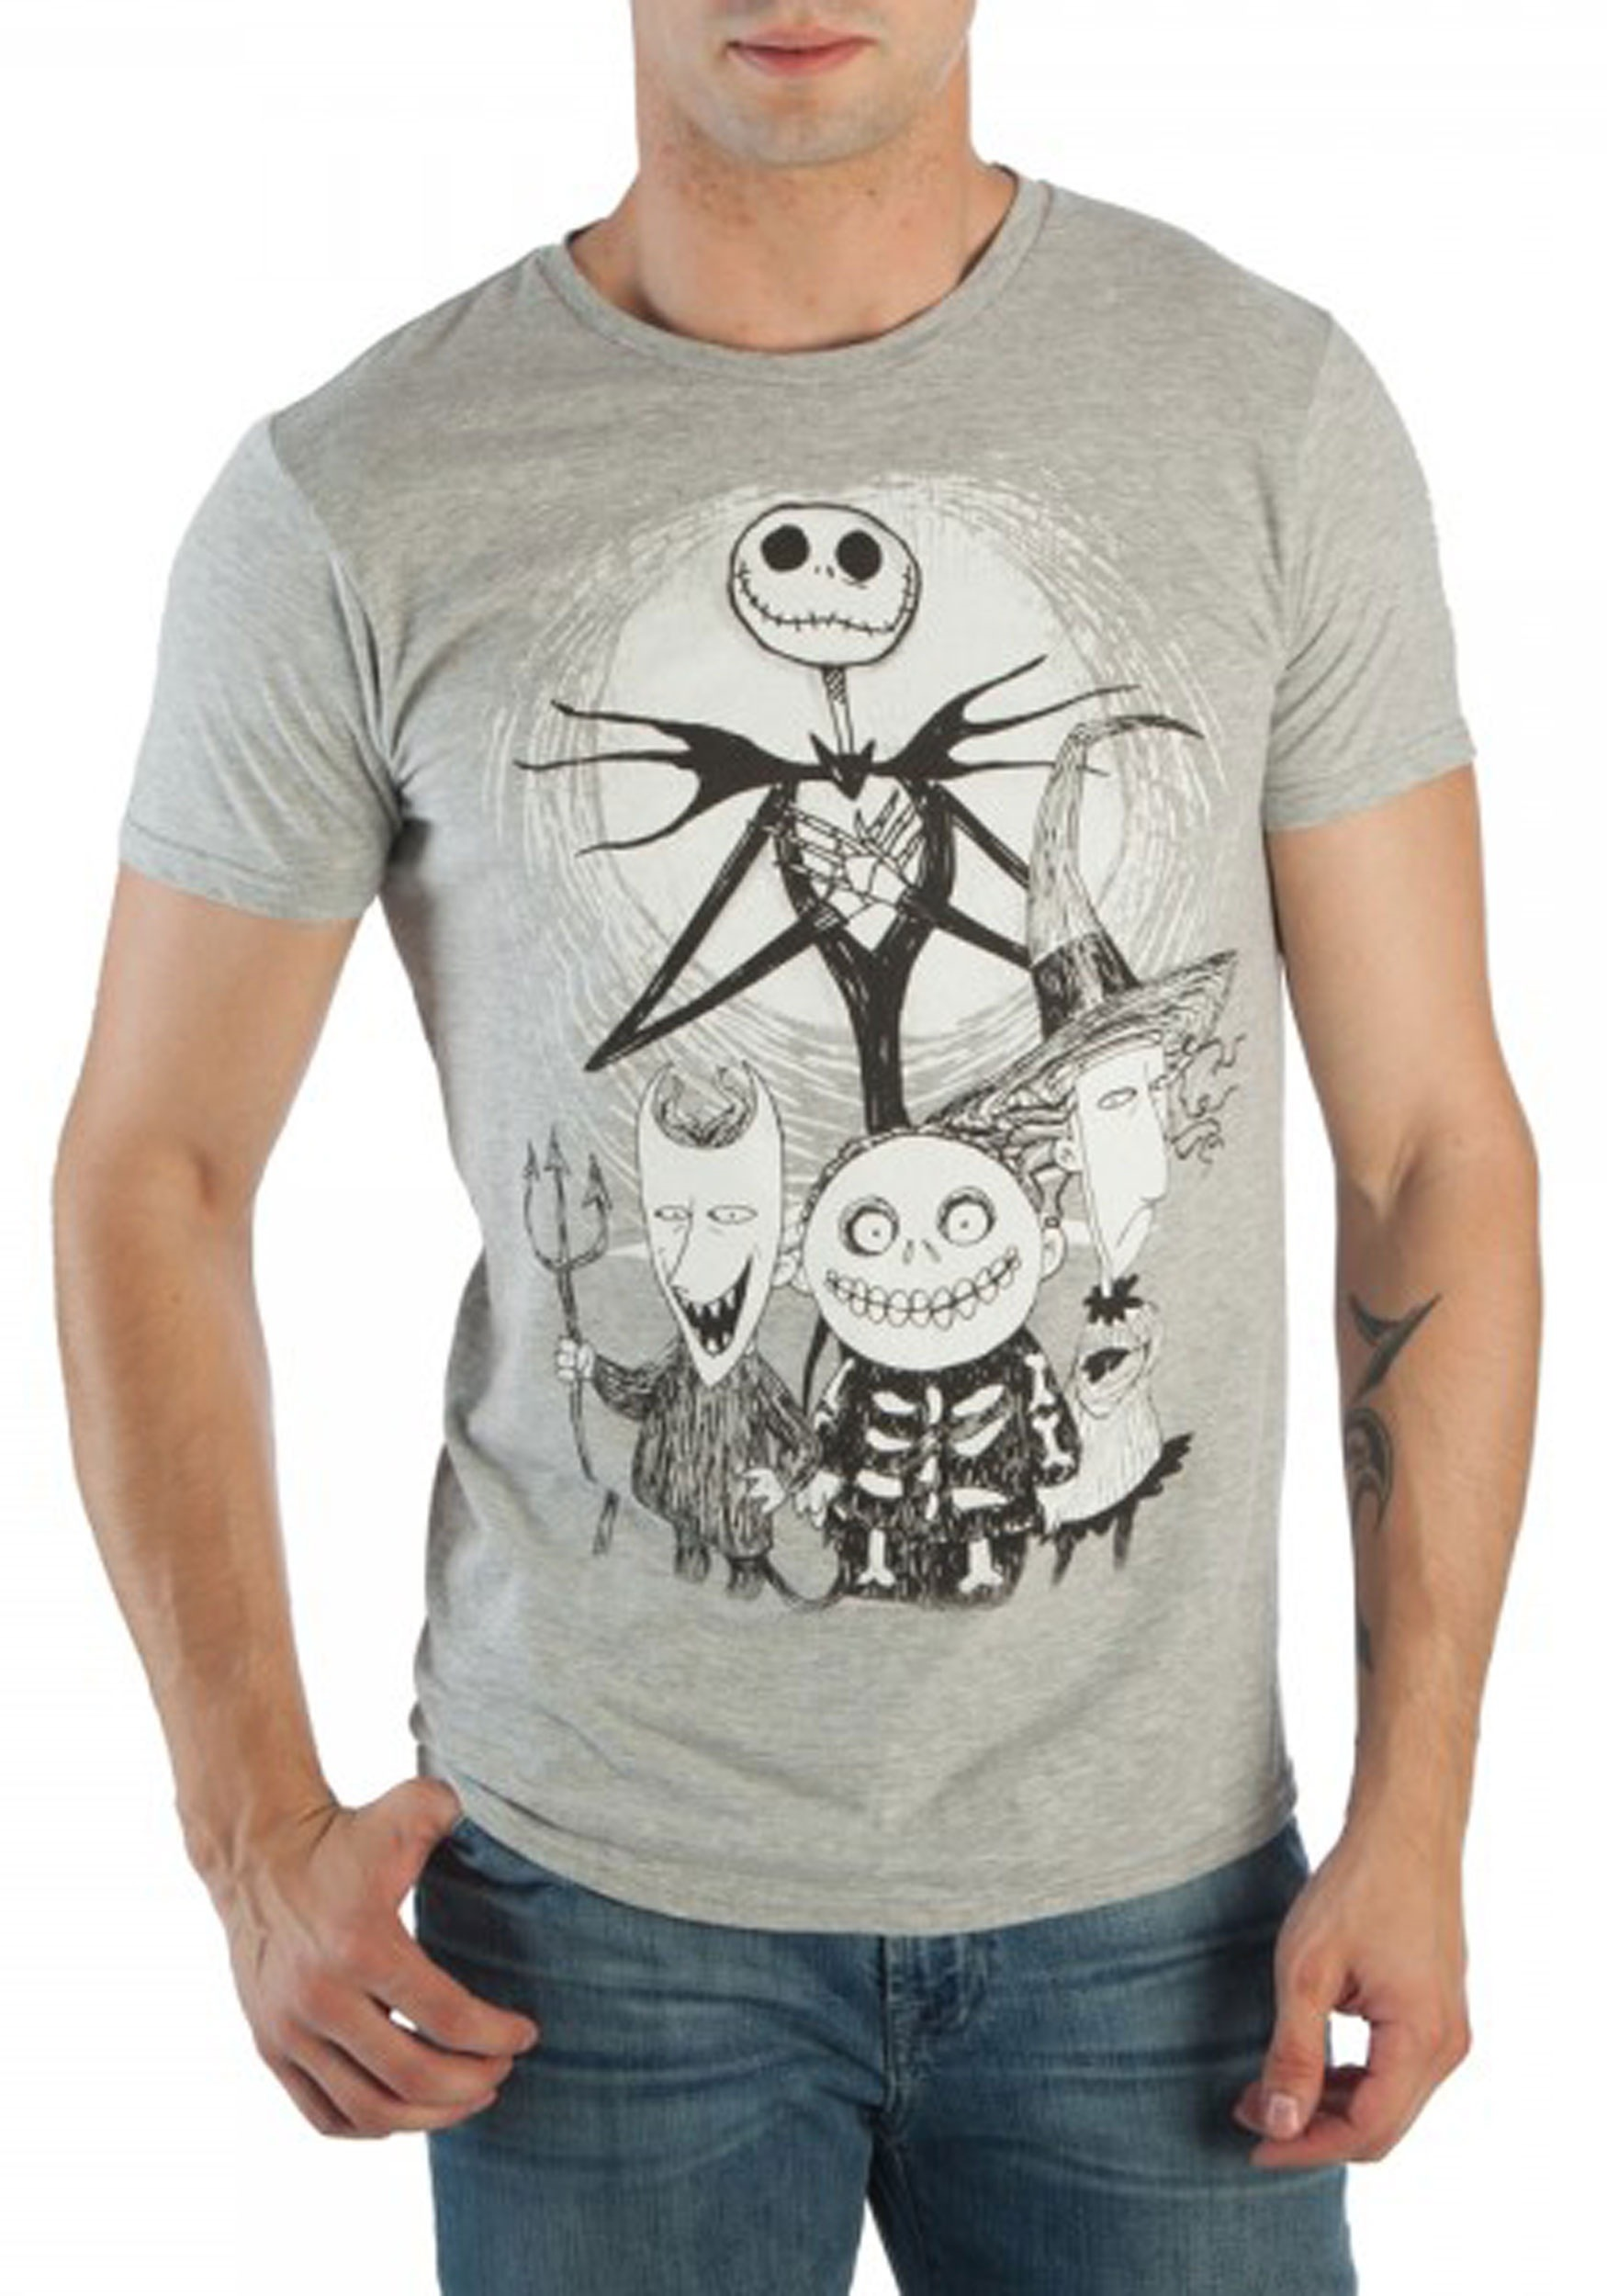 Nightmare Before Christmas Jack, Lock, Shock and Barrel - Walmart.com